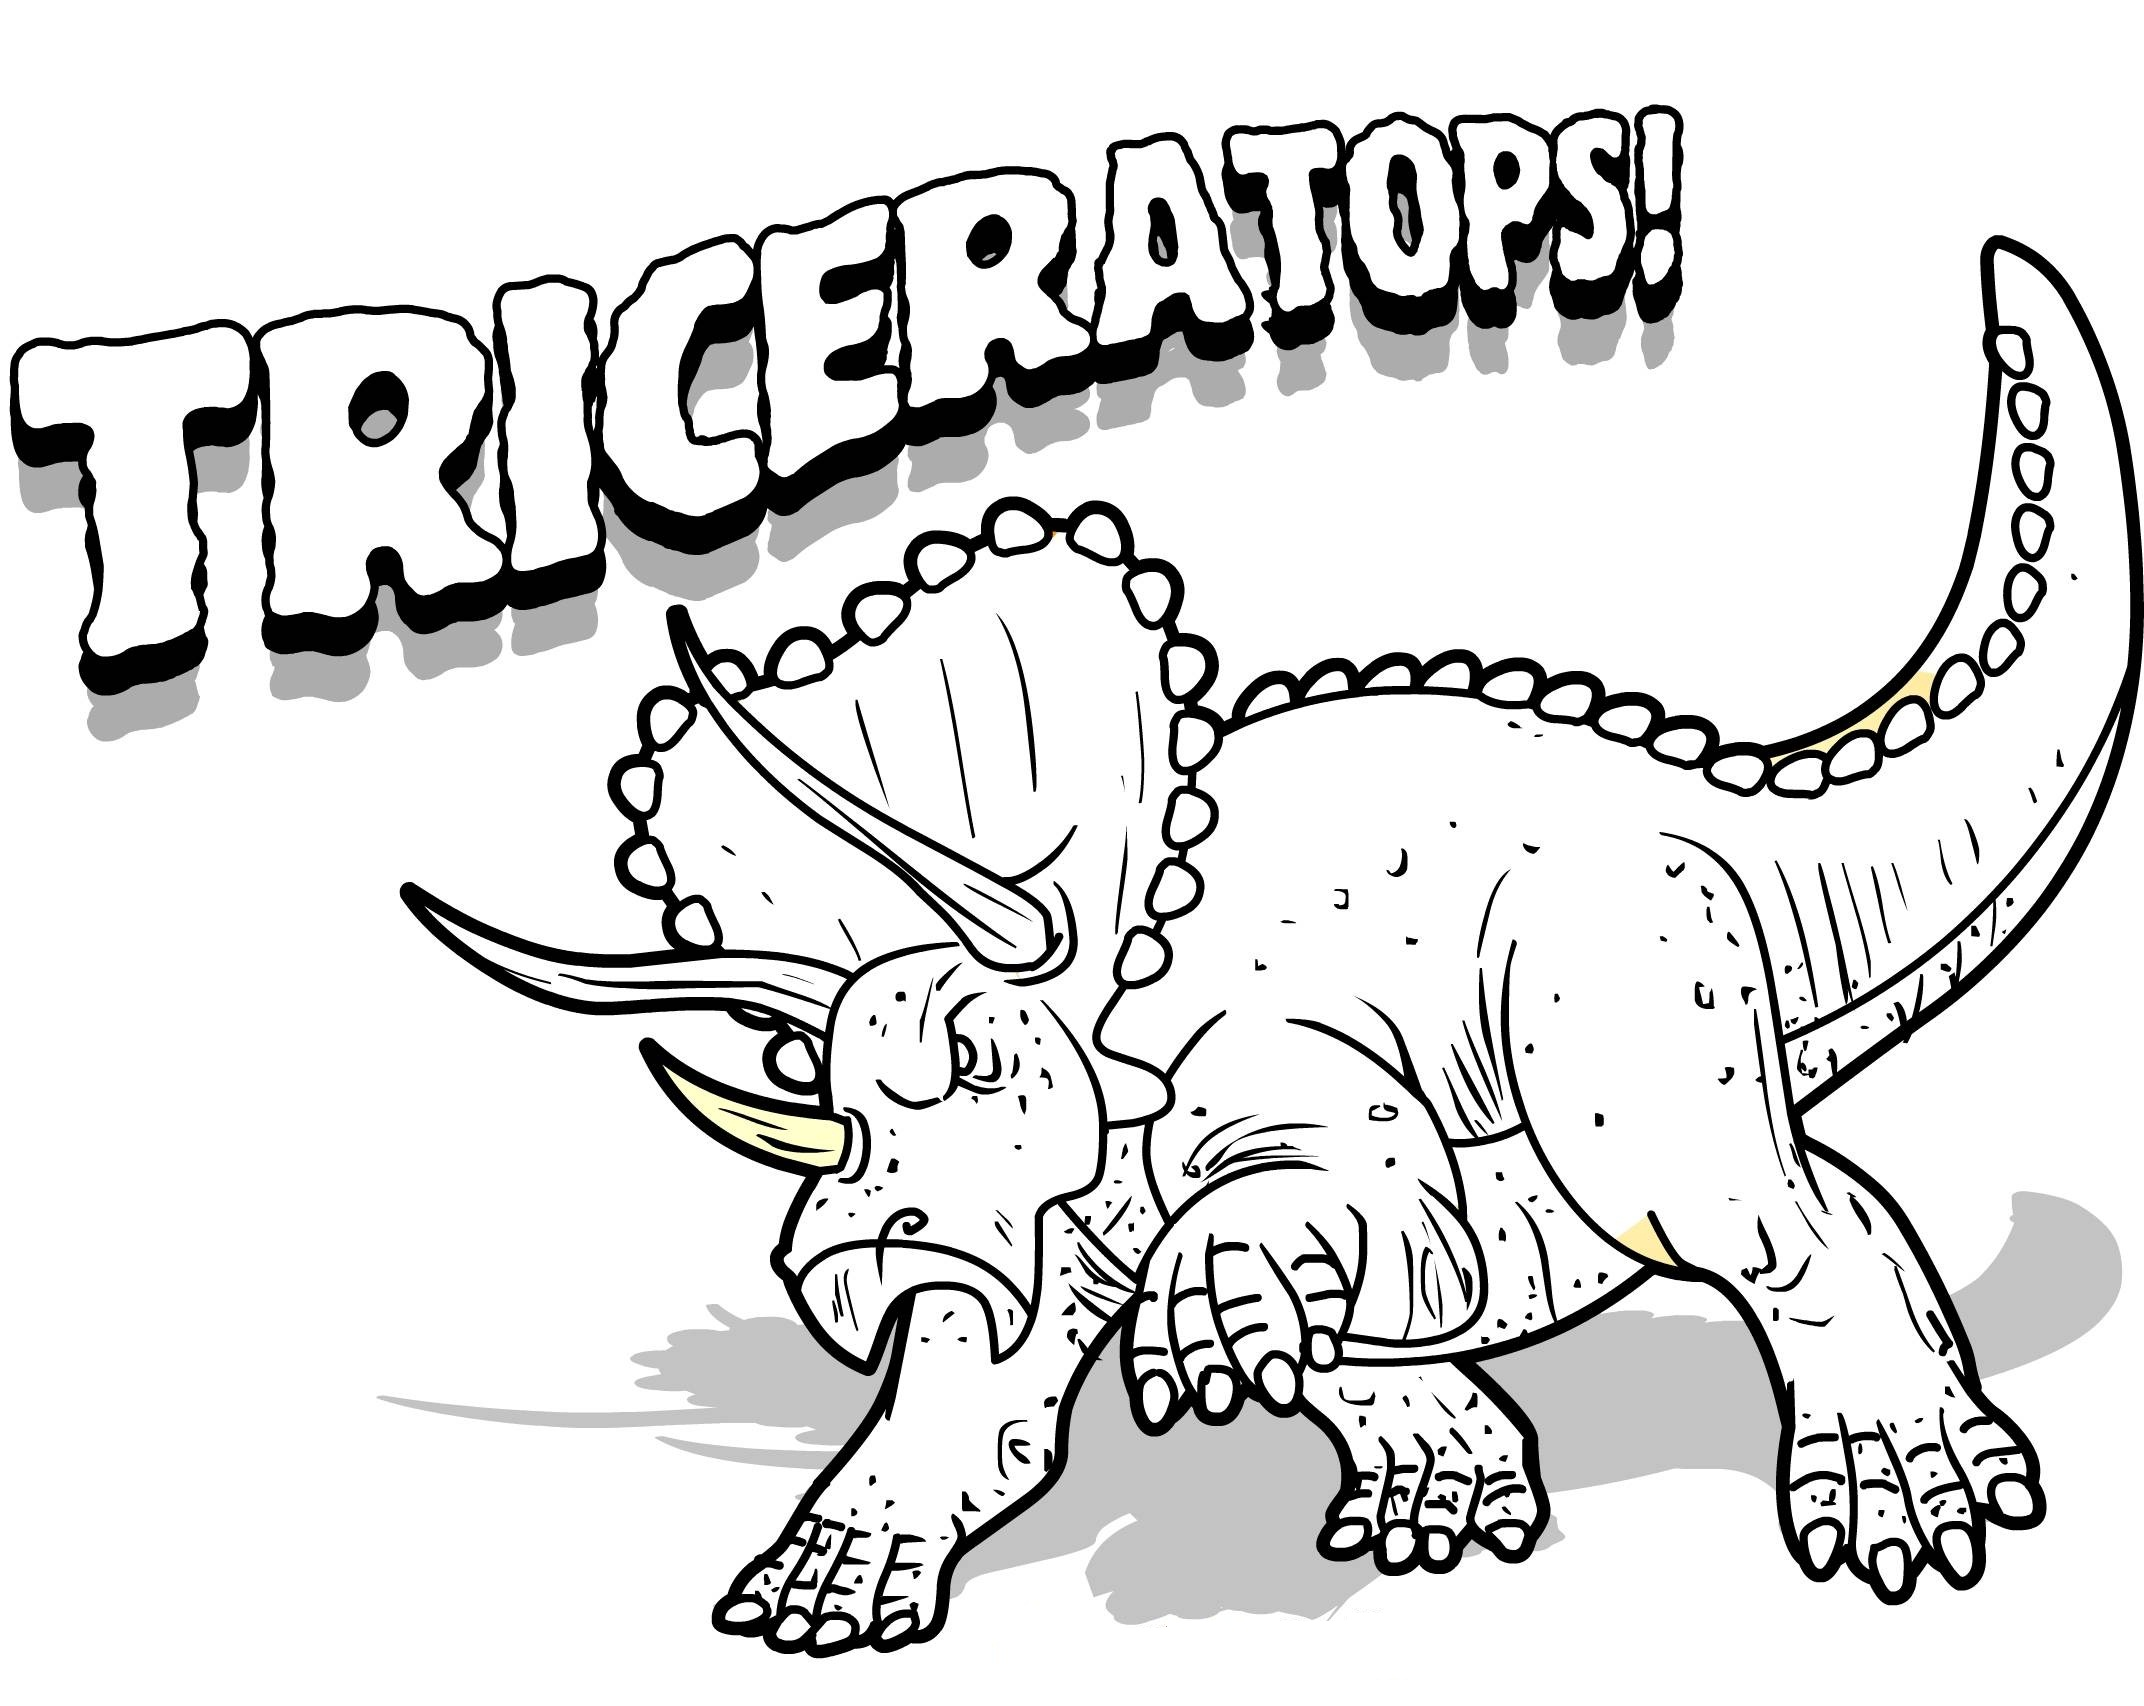 free dinosaur pictures to print and color dinosaur coloring pages to download and print for free and free dinosaur pictures to color print